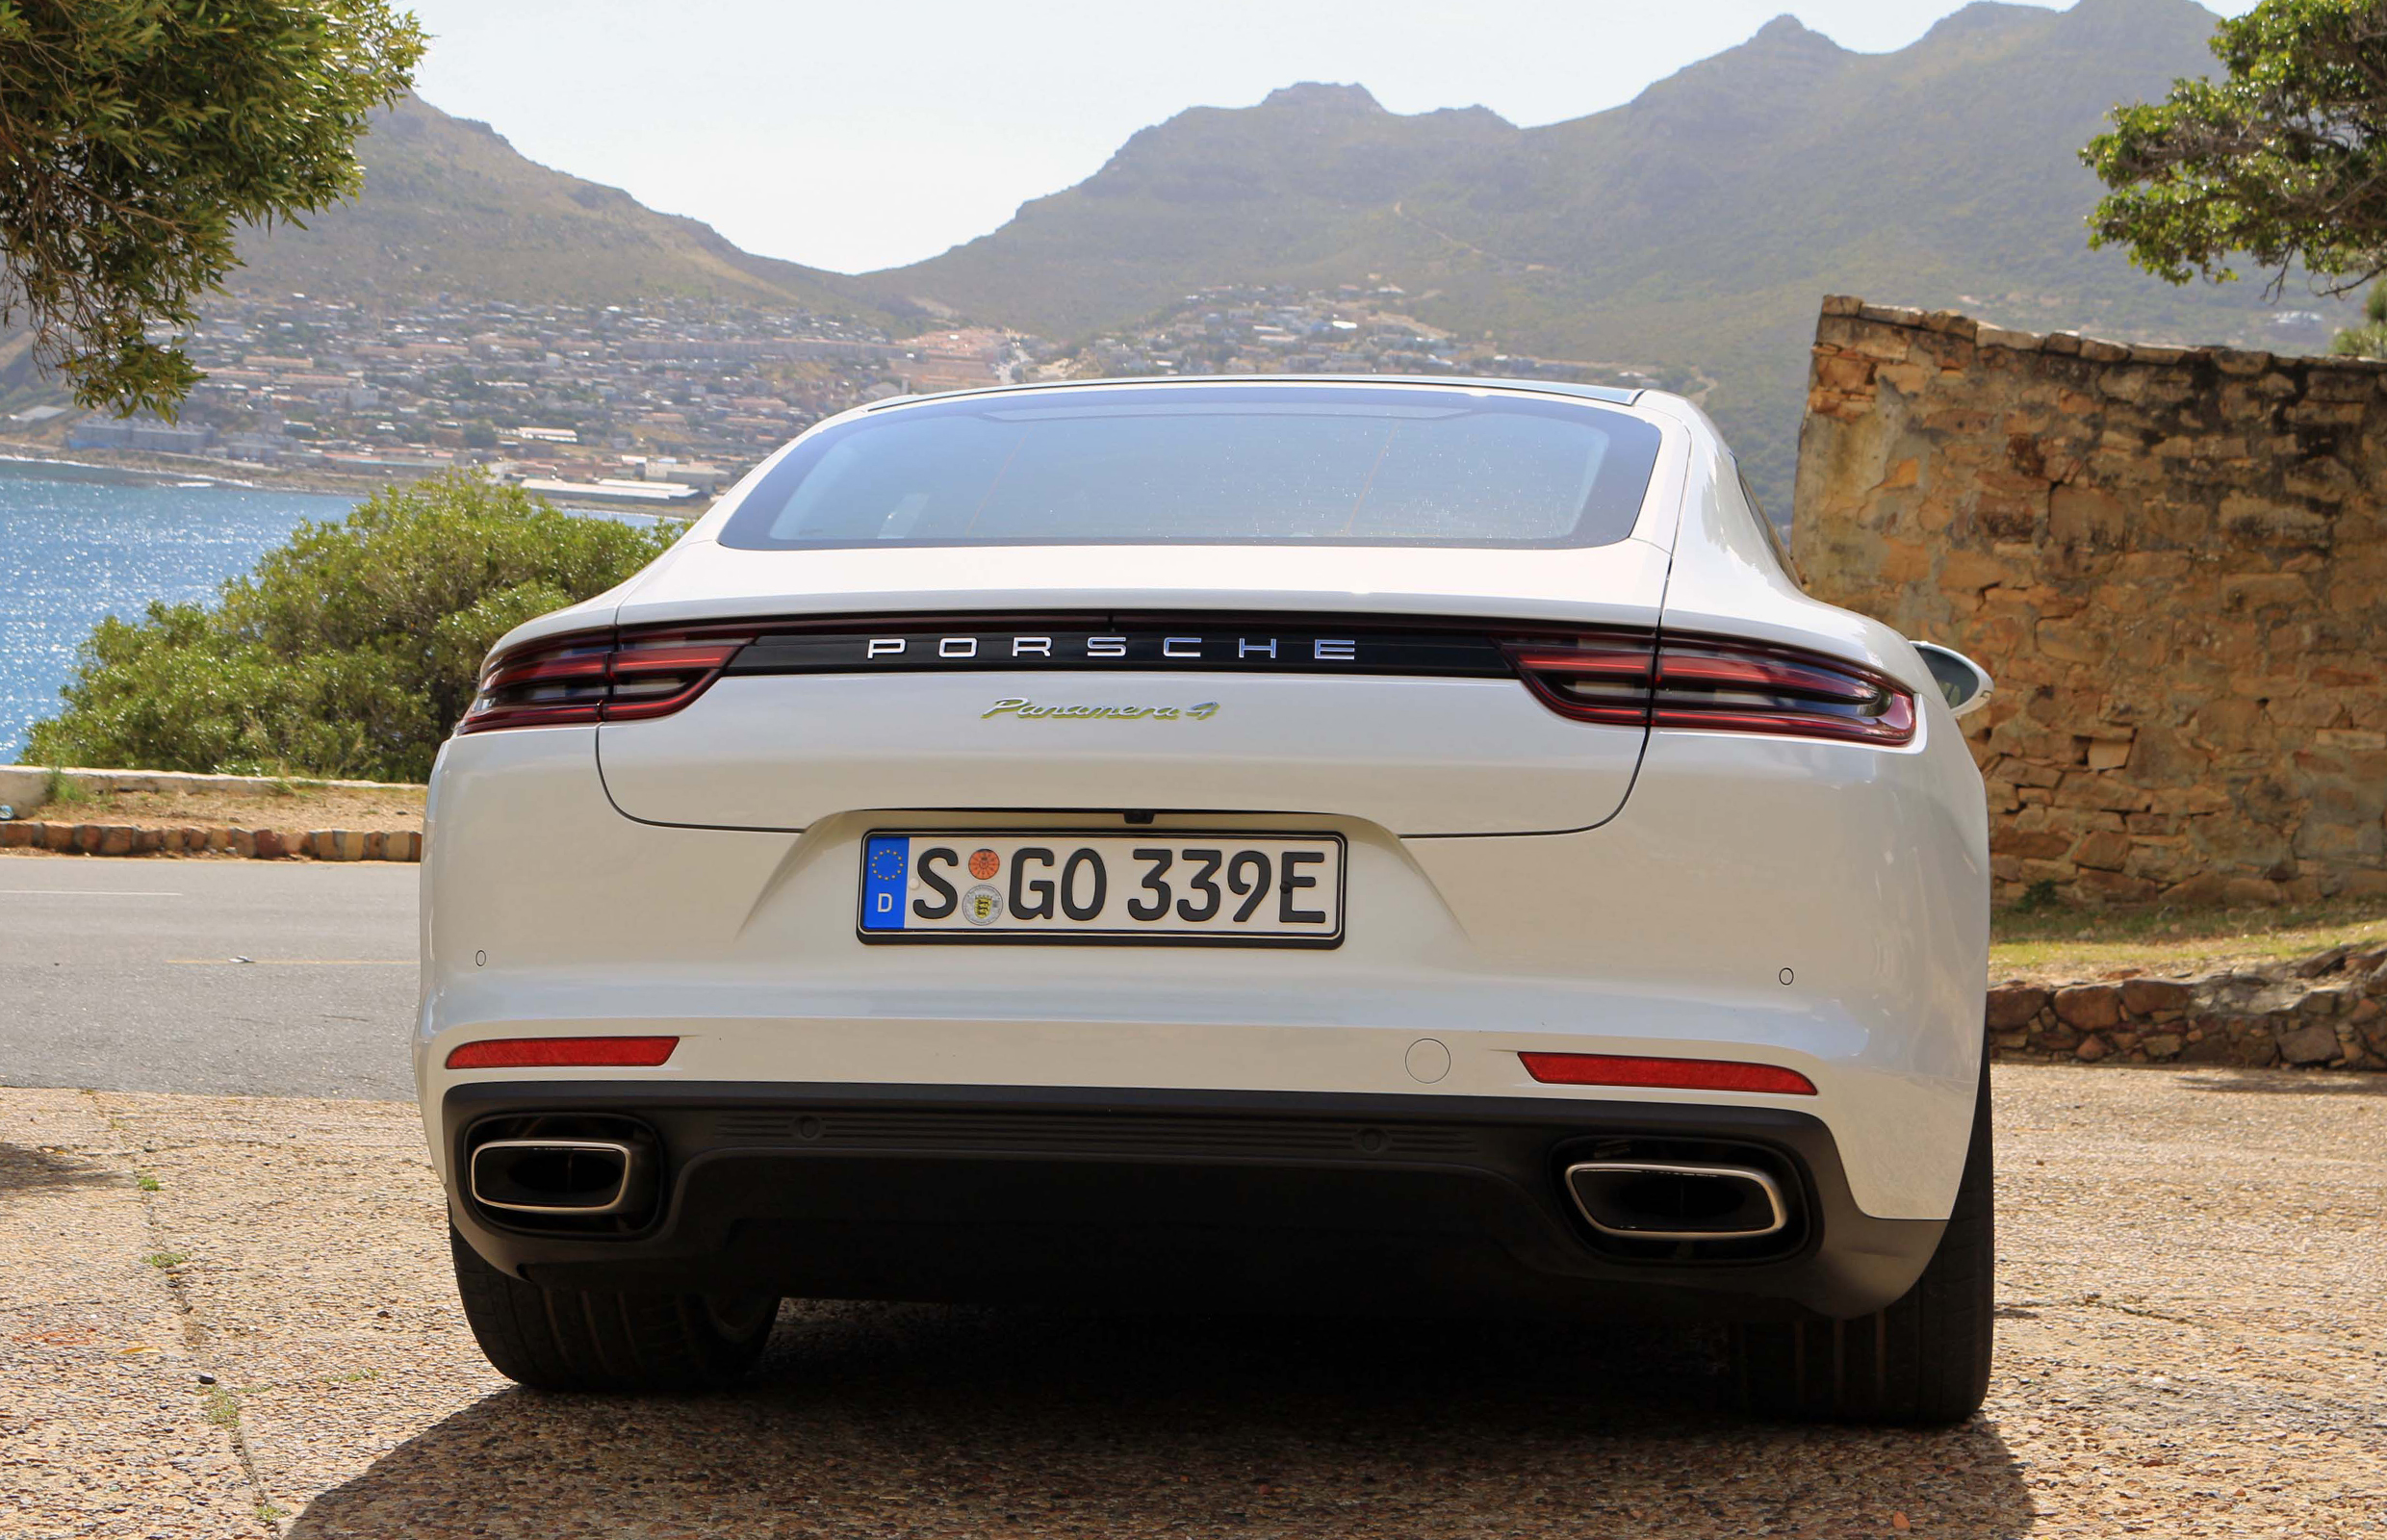 2018 Porsche Panamera 4 E Hybrid Exterior Rear (View 6 of 10)